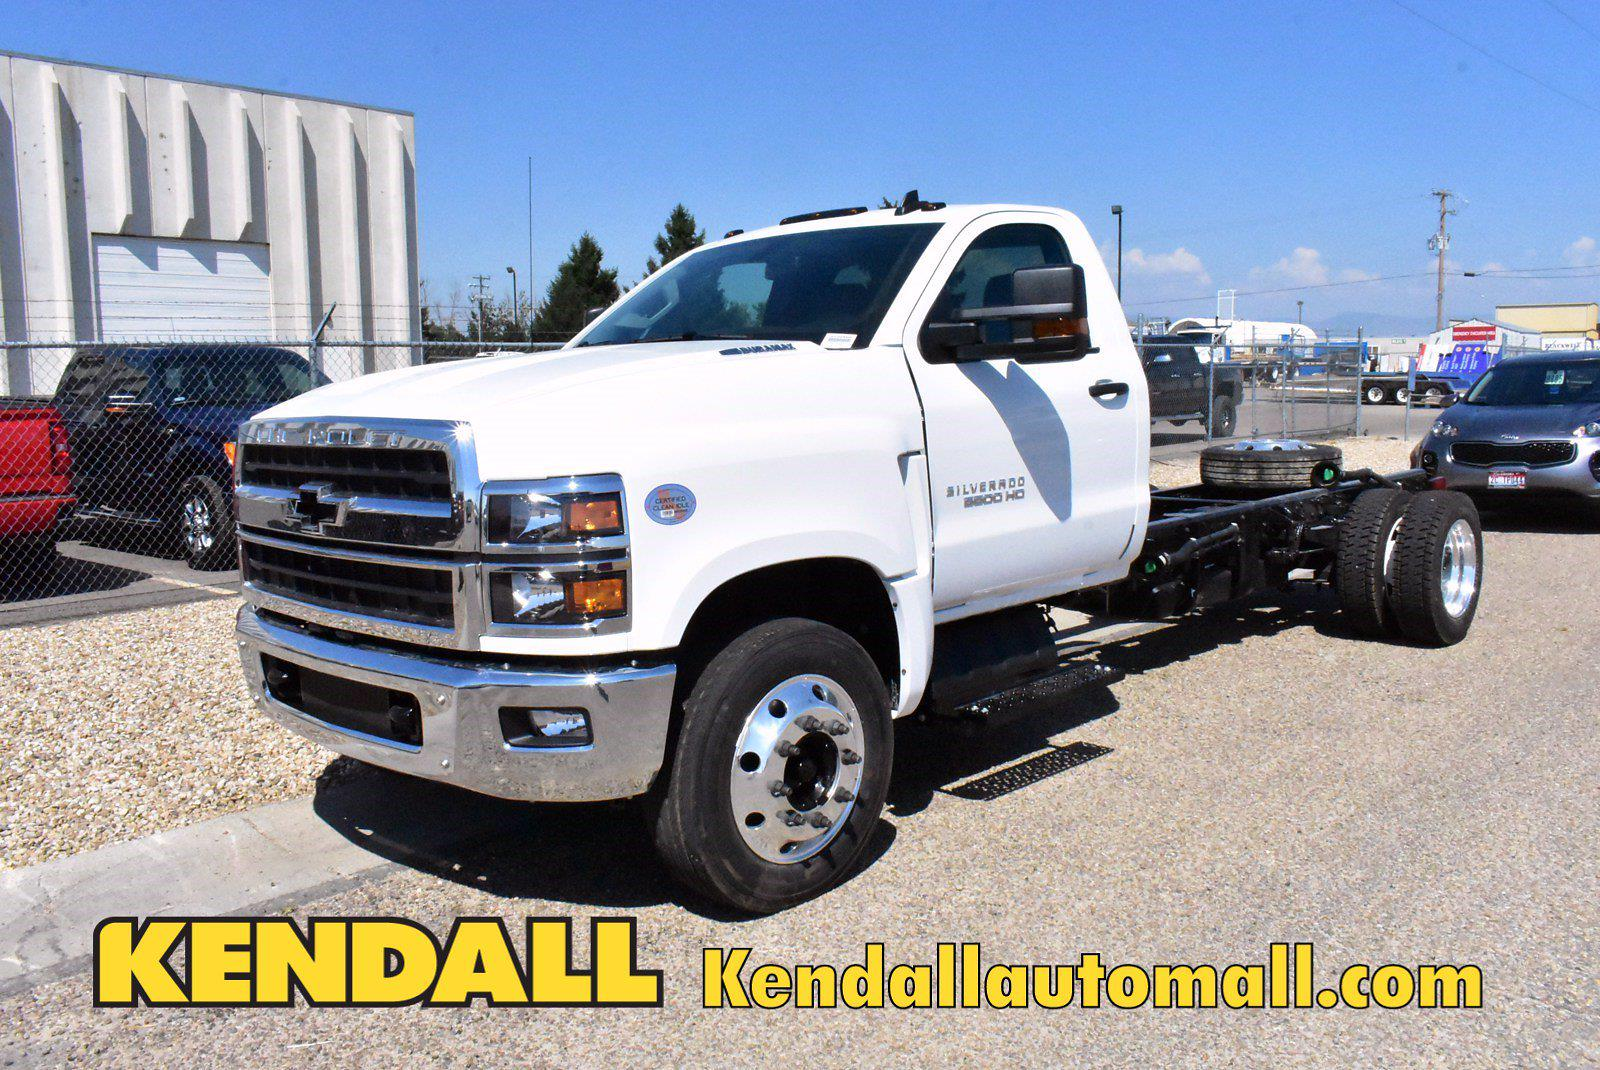 2020 Chevrolet Silverado 5500 DRW 4x2, Cab Chassis #D100456 - photo 1